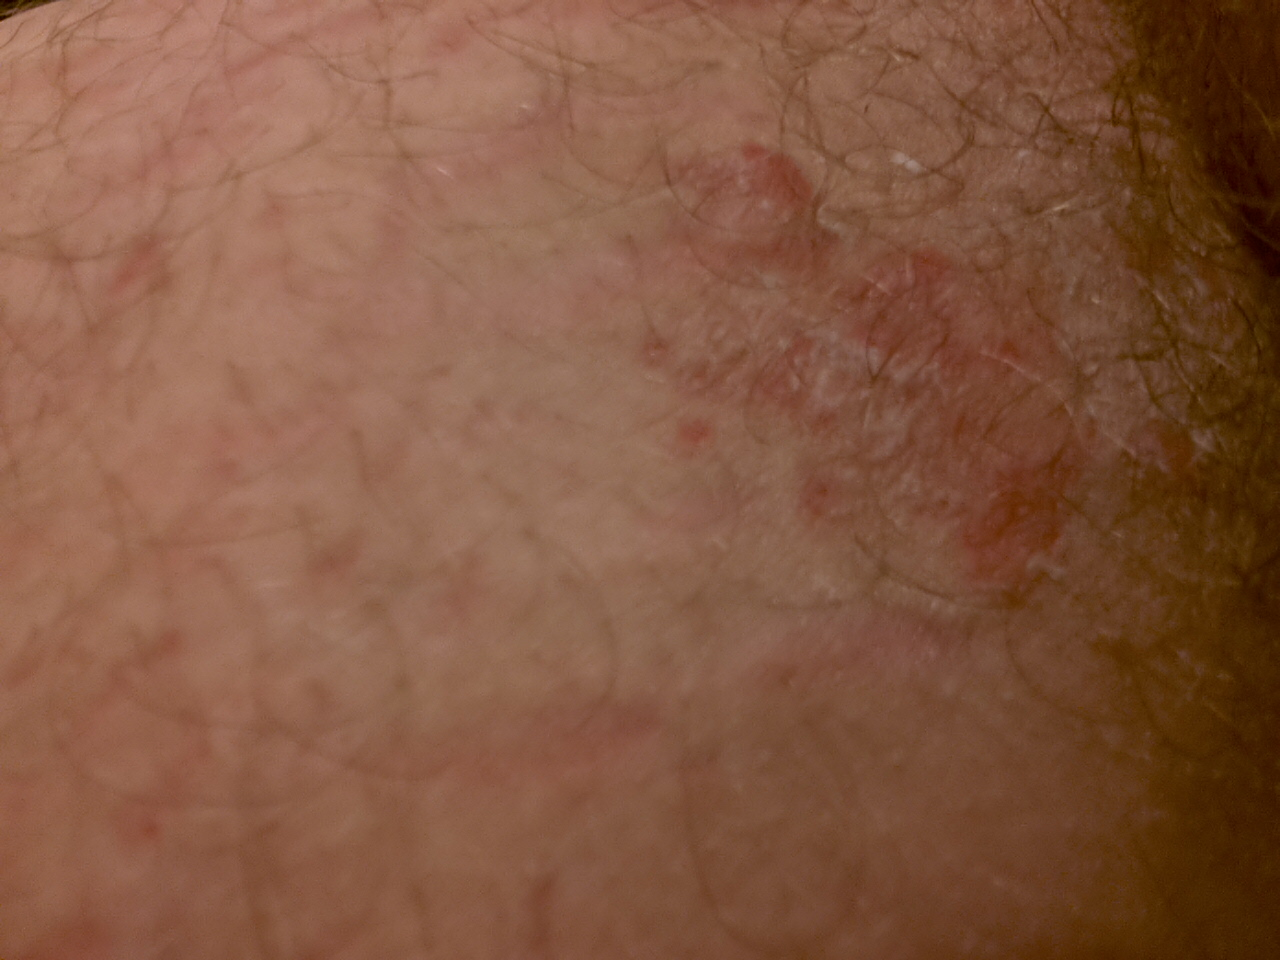 Slideshow: Below the Belt: Rashes, Bumps , and Lumps